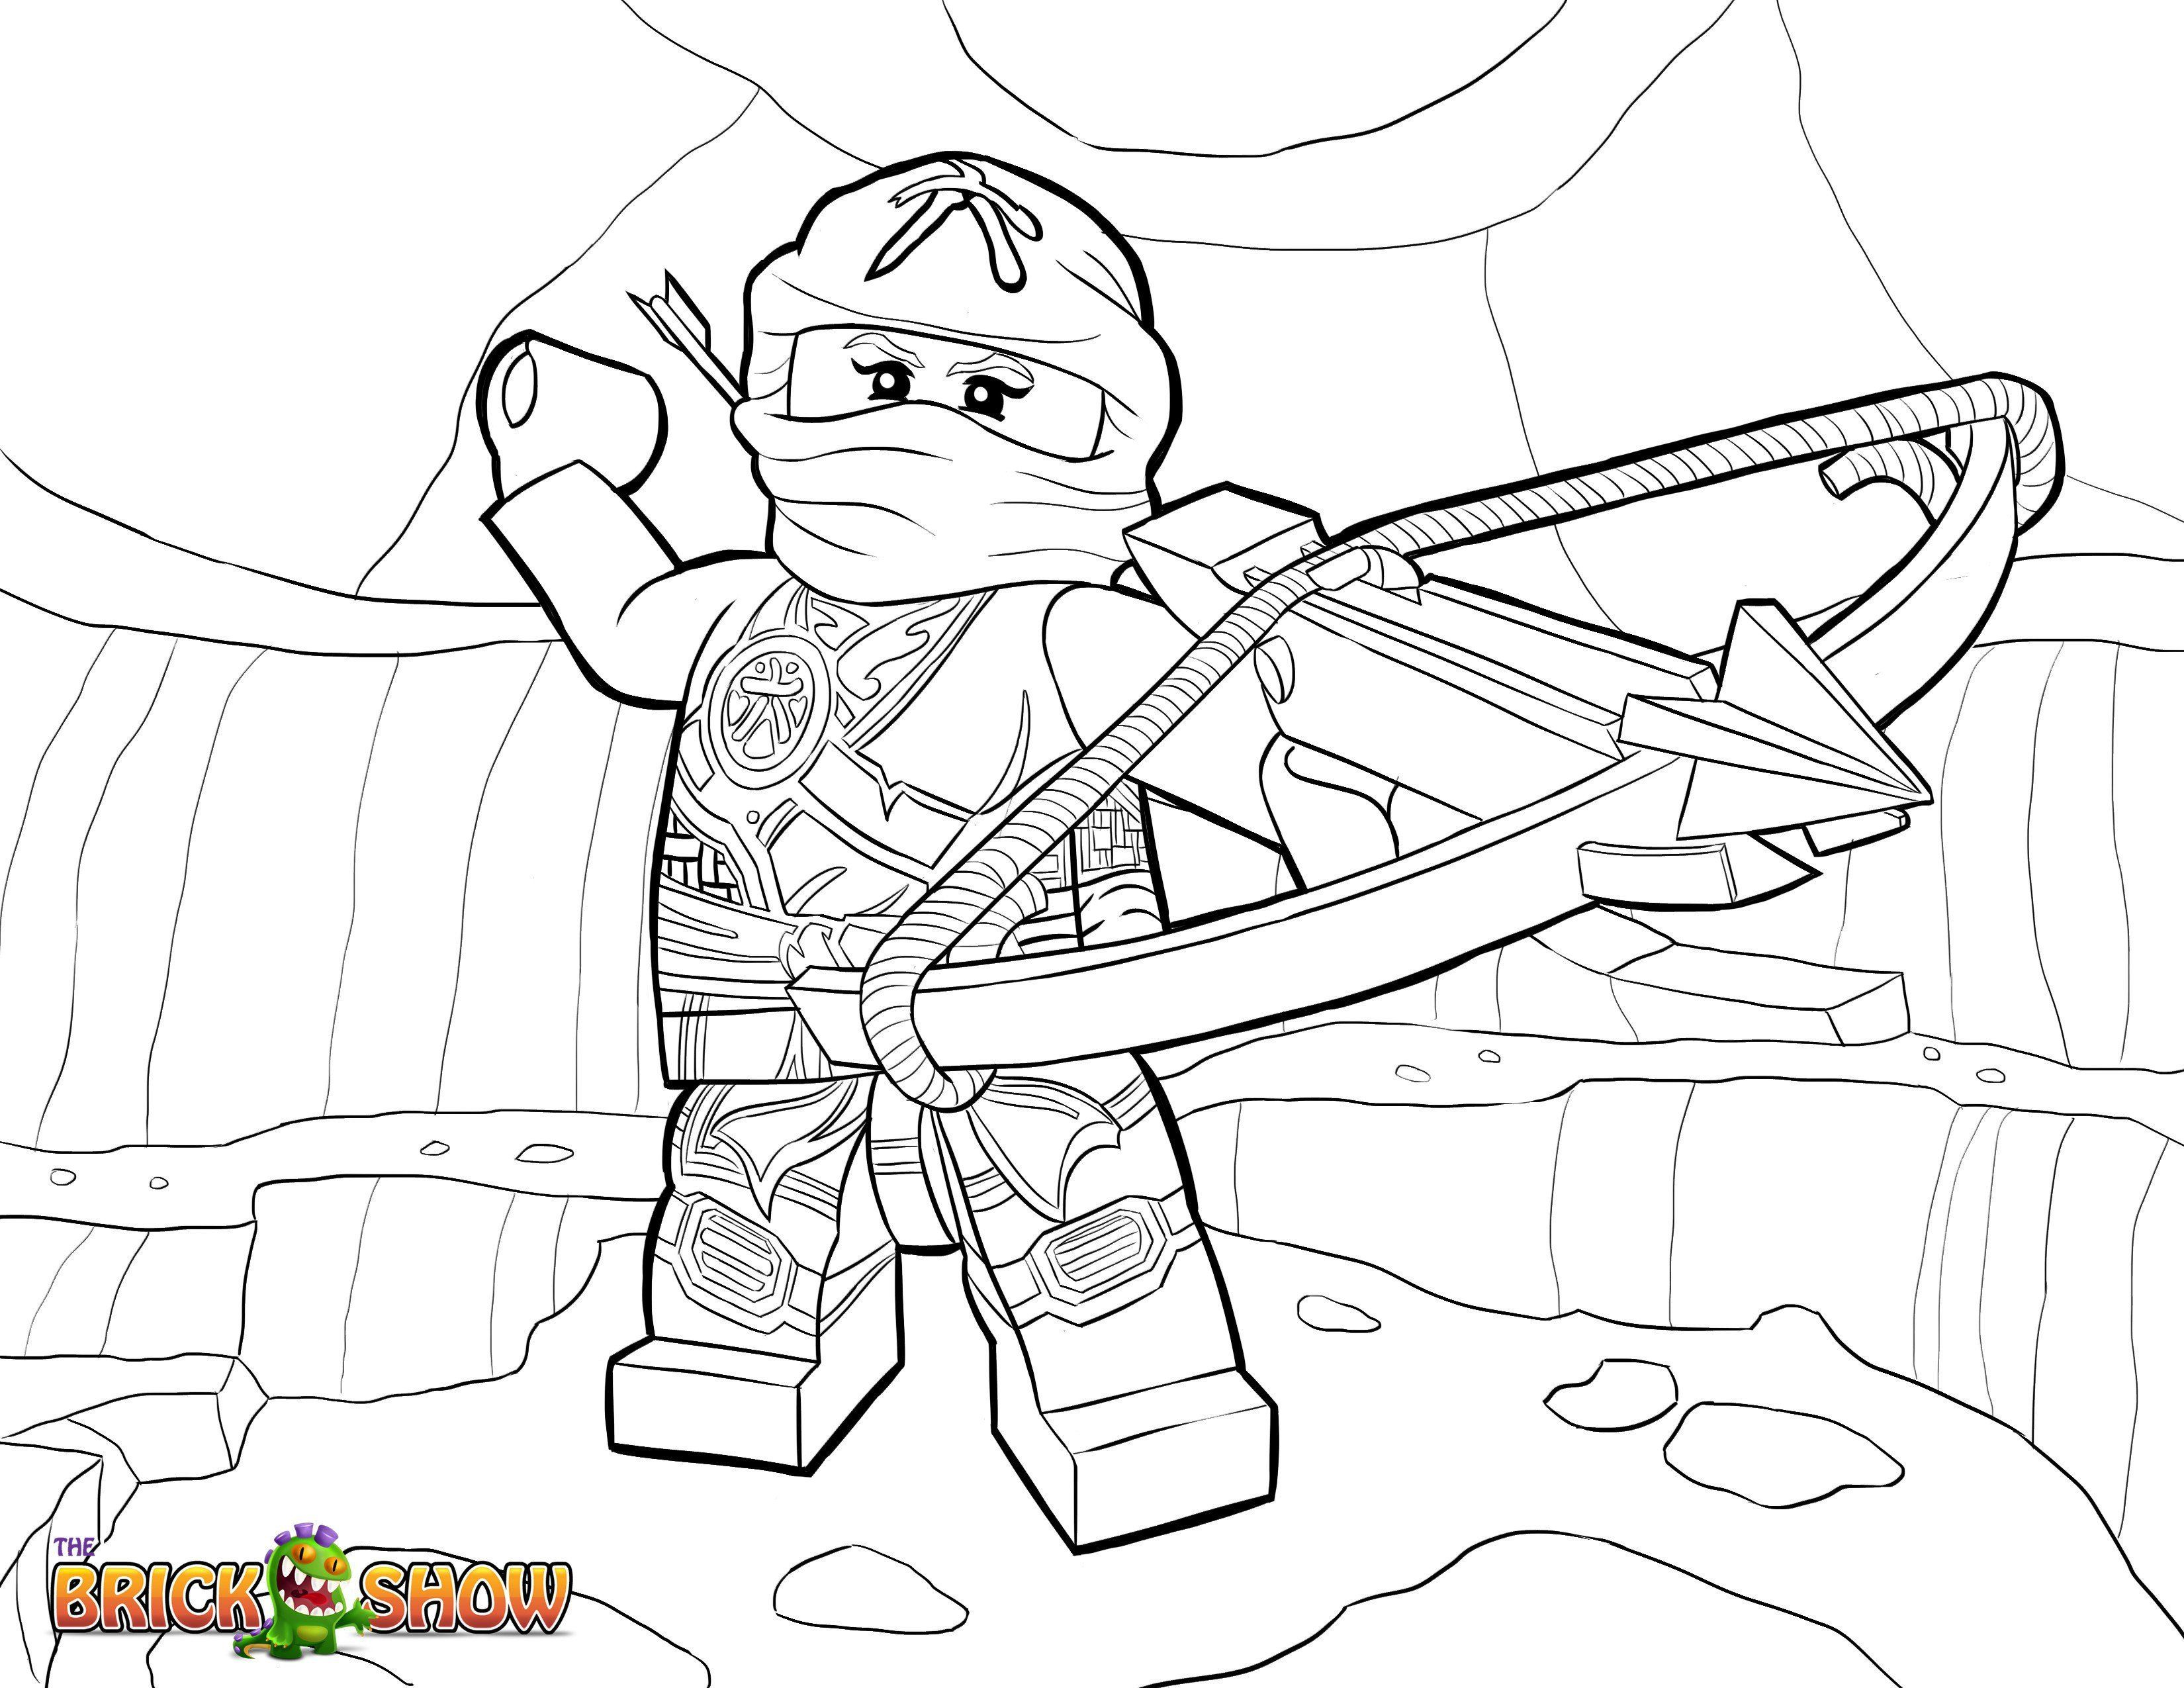 Coloring Pages Of Pokemon Fresh Ausmalbilder Ninjago Schlange Neu Top 75 Free Printable Fairy Coloring Pages Ninjago Coloring Pages Monster Coloring Pages